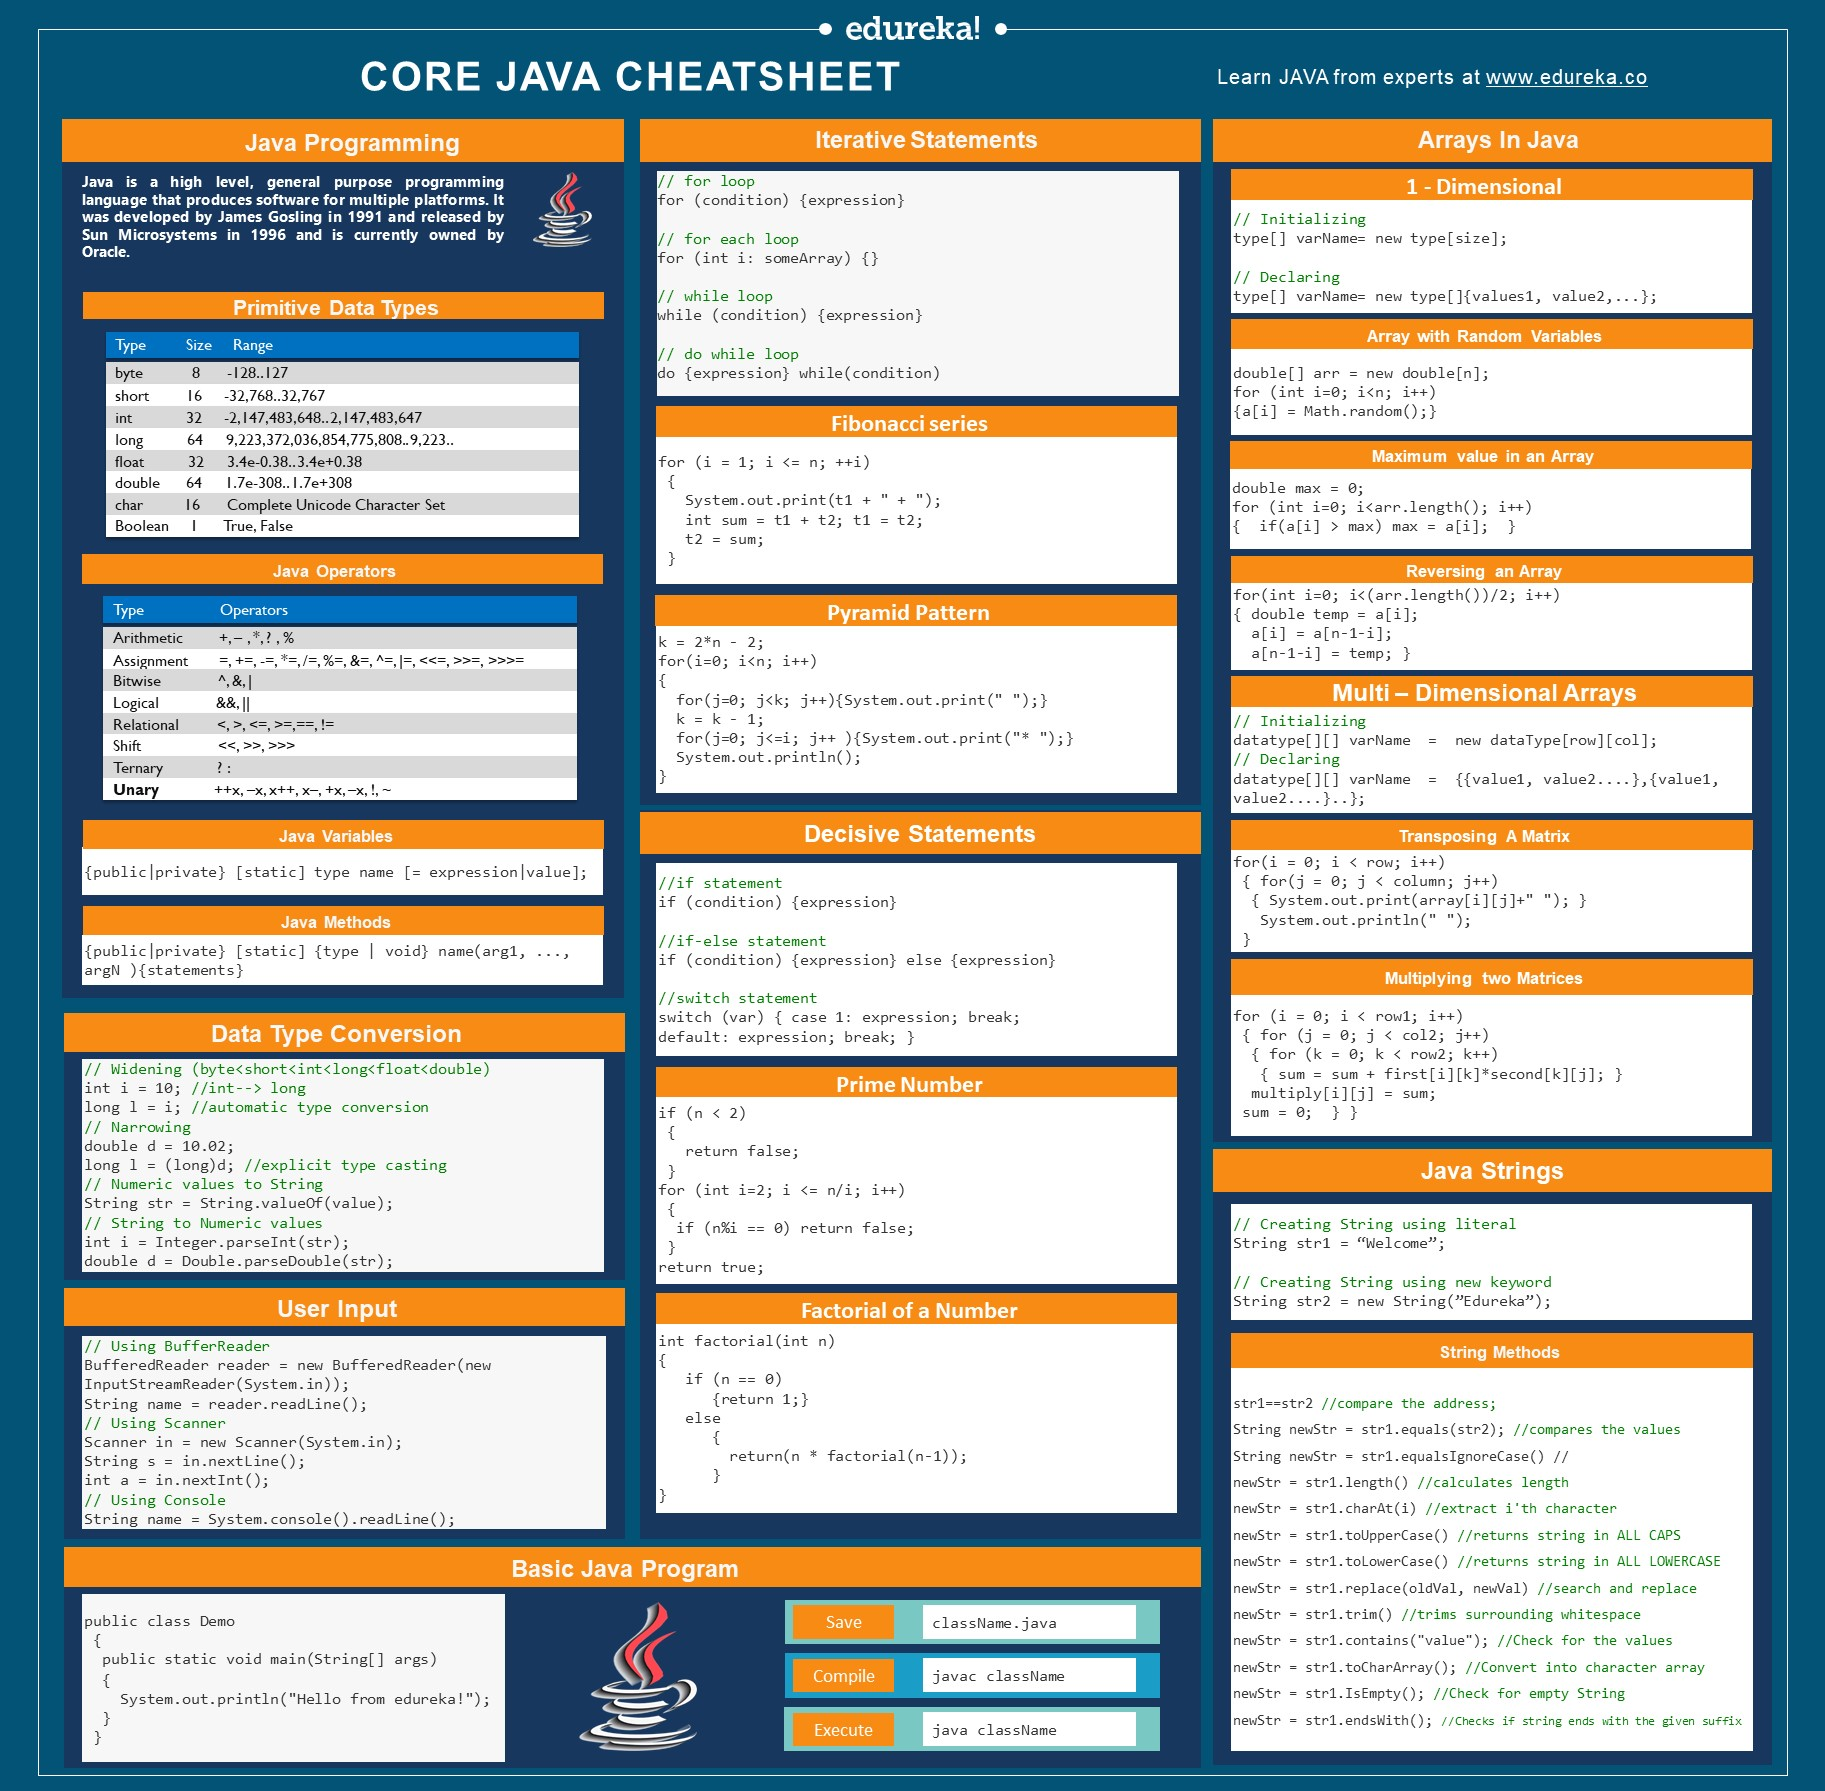 photograph about Grammar Cheat Sheets Printable titled Java Cheat Sheet Java Programming Cheat Sheet For